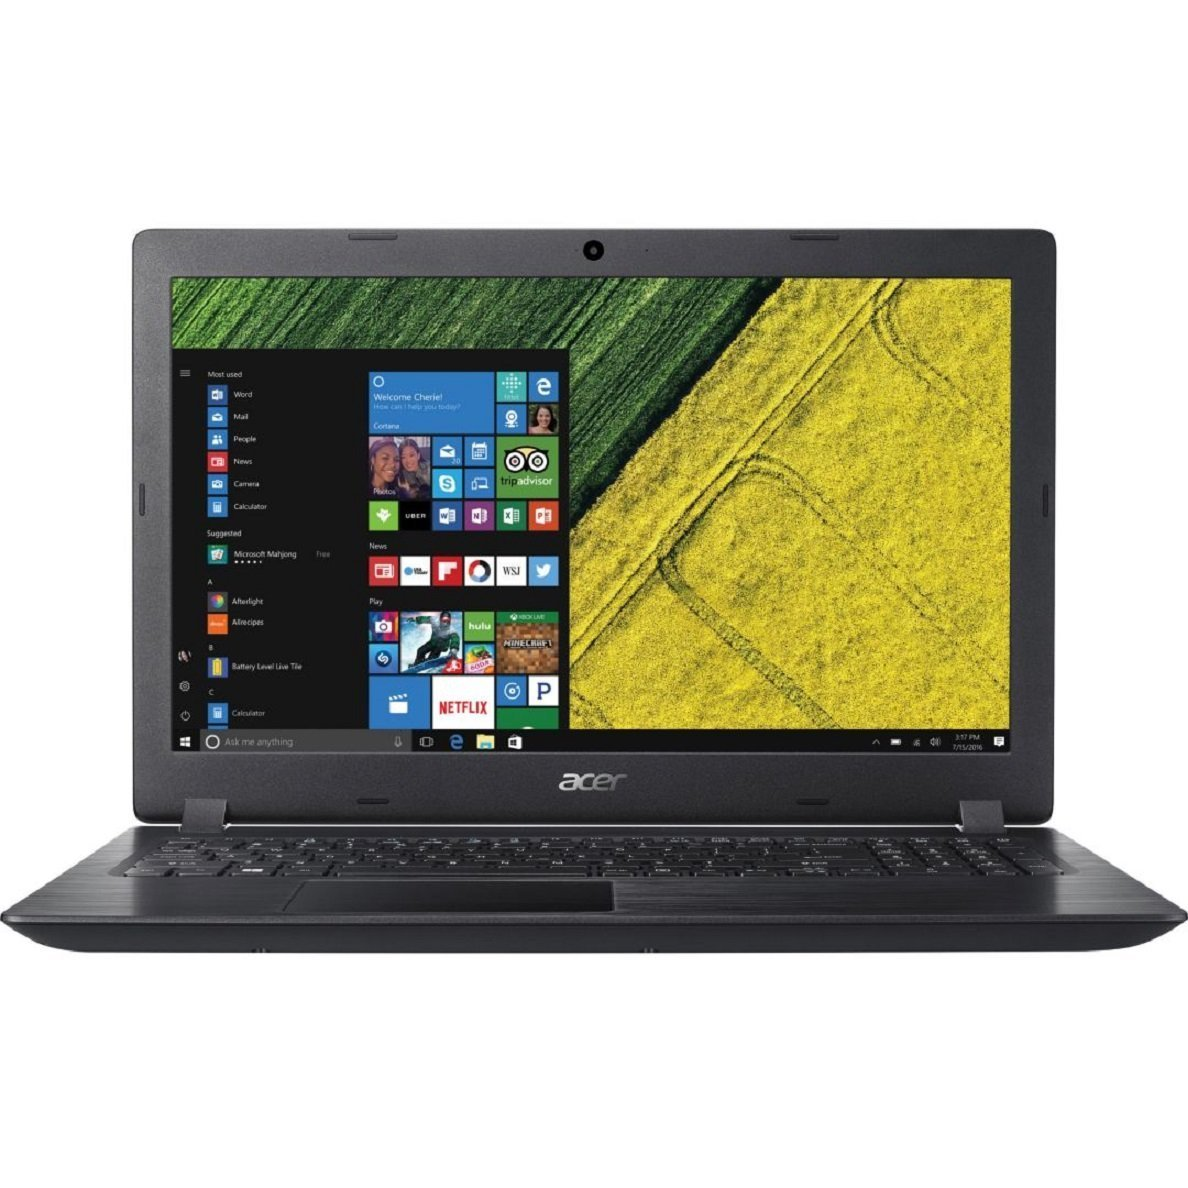 2018 Premium Newest Acer 15.6 Inch Flagship Notebook Laptop Computer (Intel Core i3-7100U 2.4GHz, 8GB RAM, 128GB SSD, Intel HD Graphics 620, WiFi, SD Card Reader, HDMI, HD Webcam, DVD, Windows 10) by Acer (Image #1)